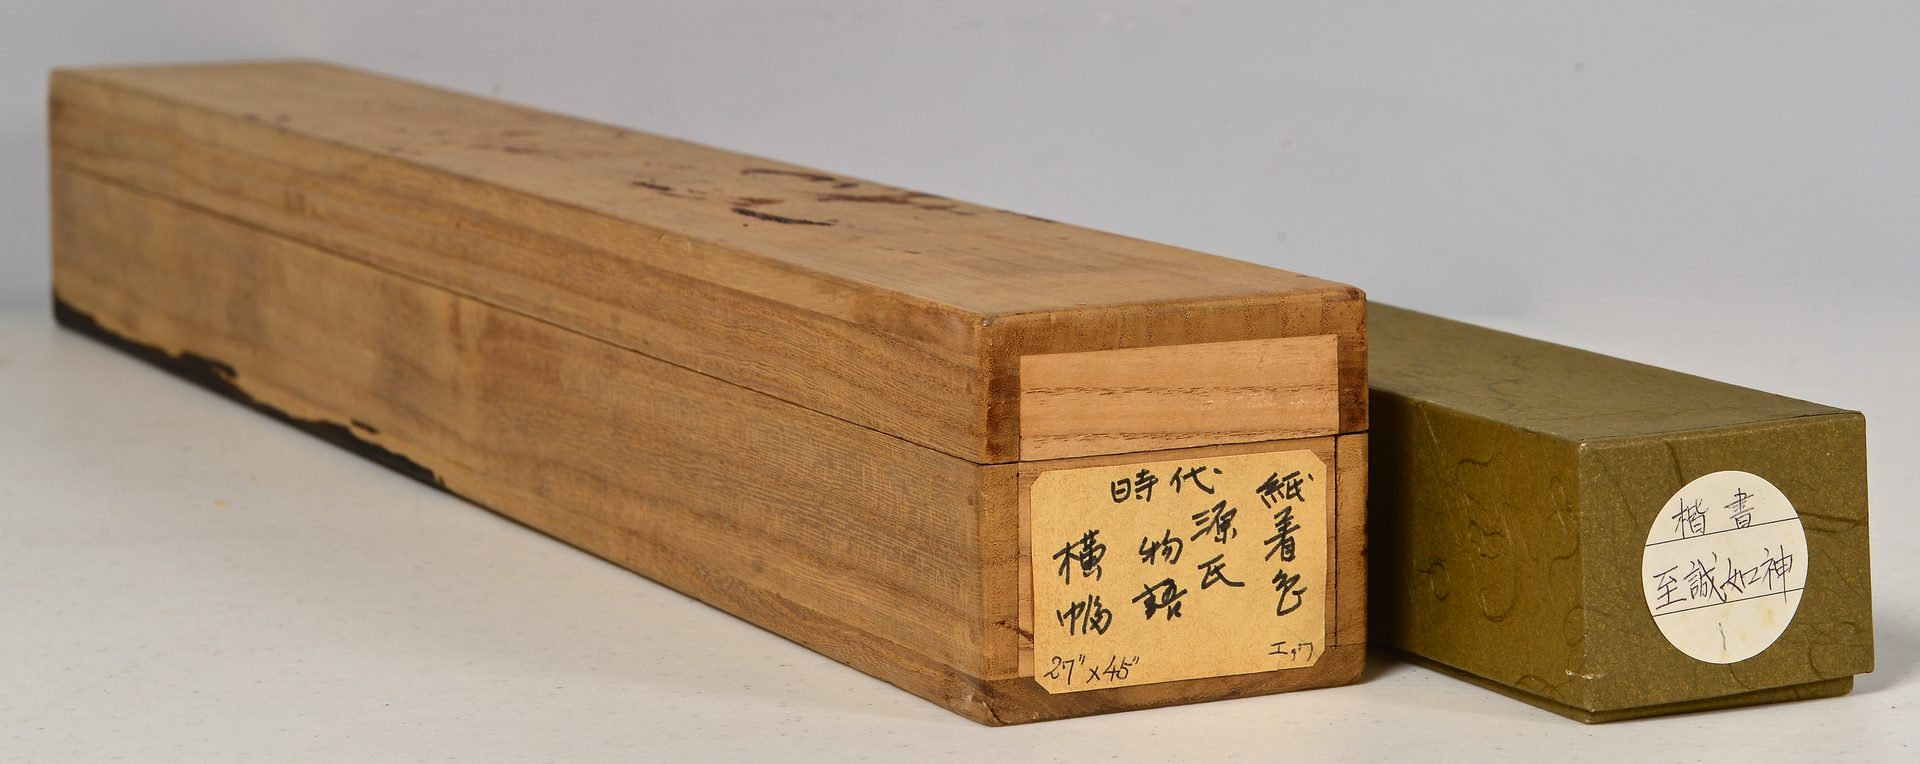 Lot 124: 2 Chinese Scrolls plus Cricket Picture